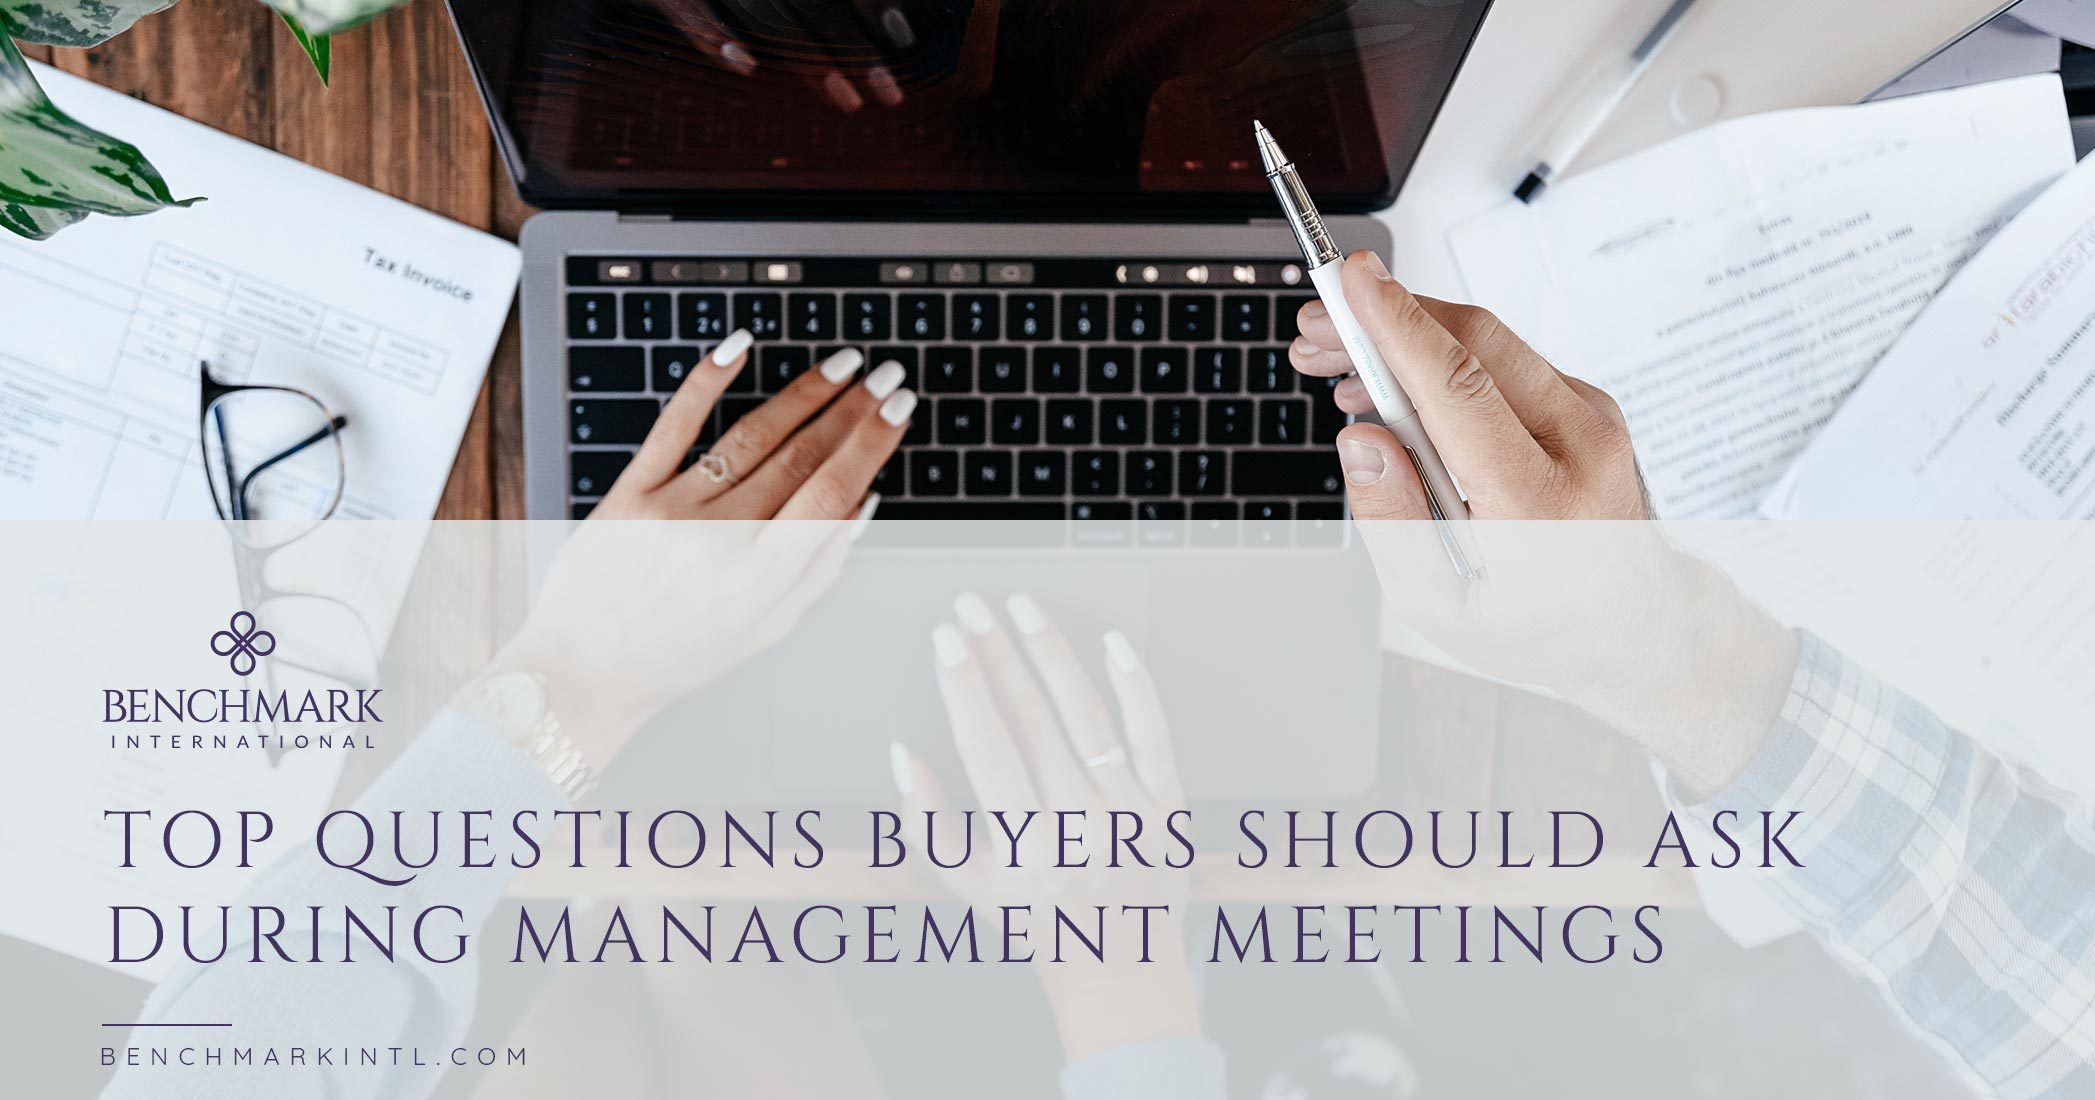 Top Questions Buyers Should Ask during Management Meetings When Acquiring a Company